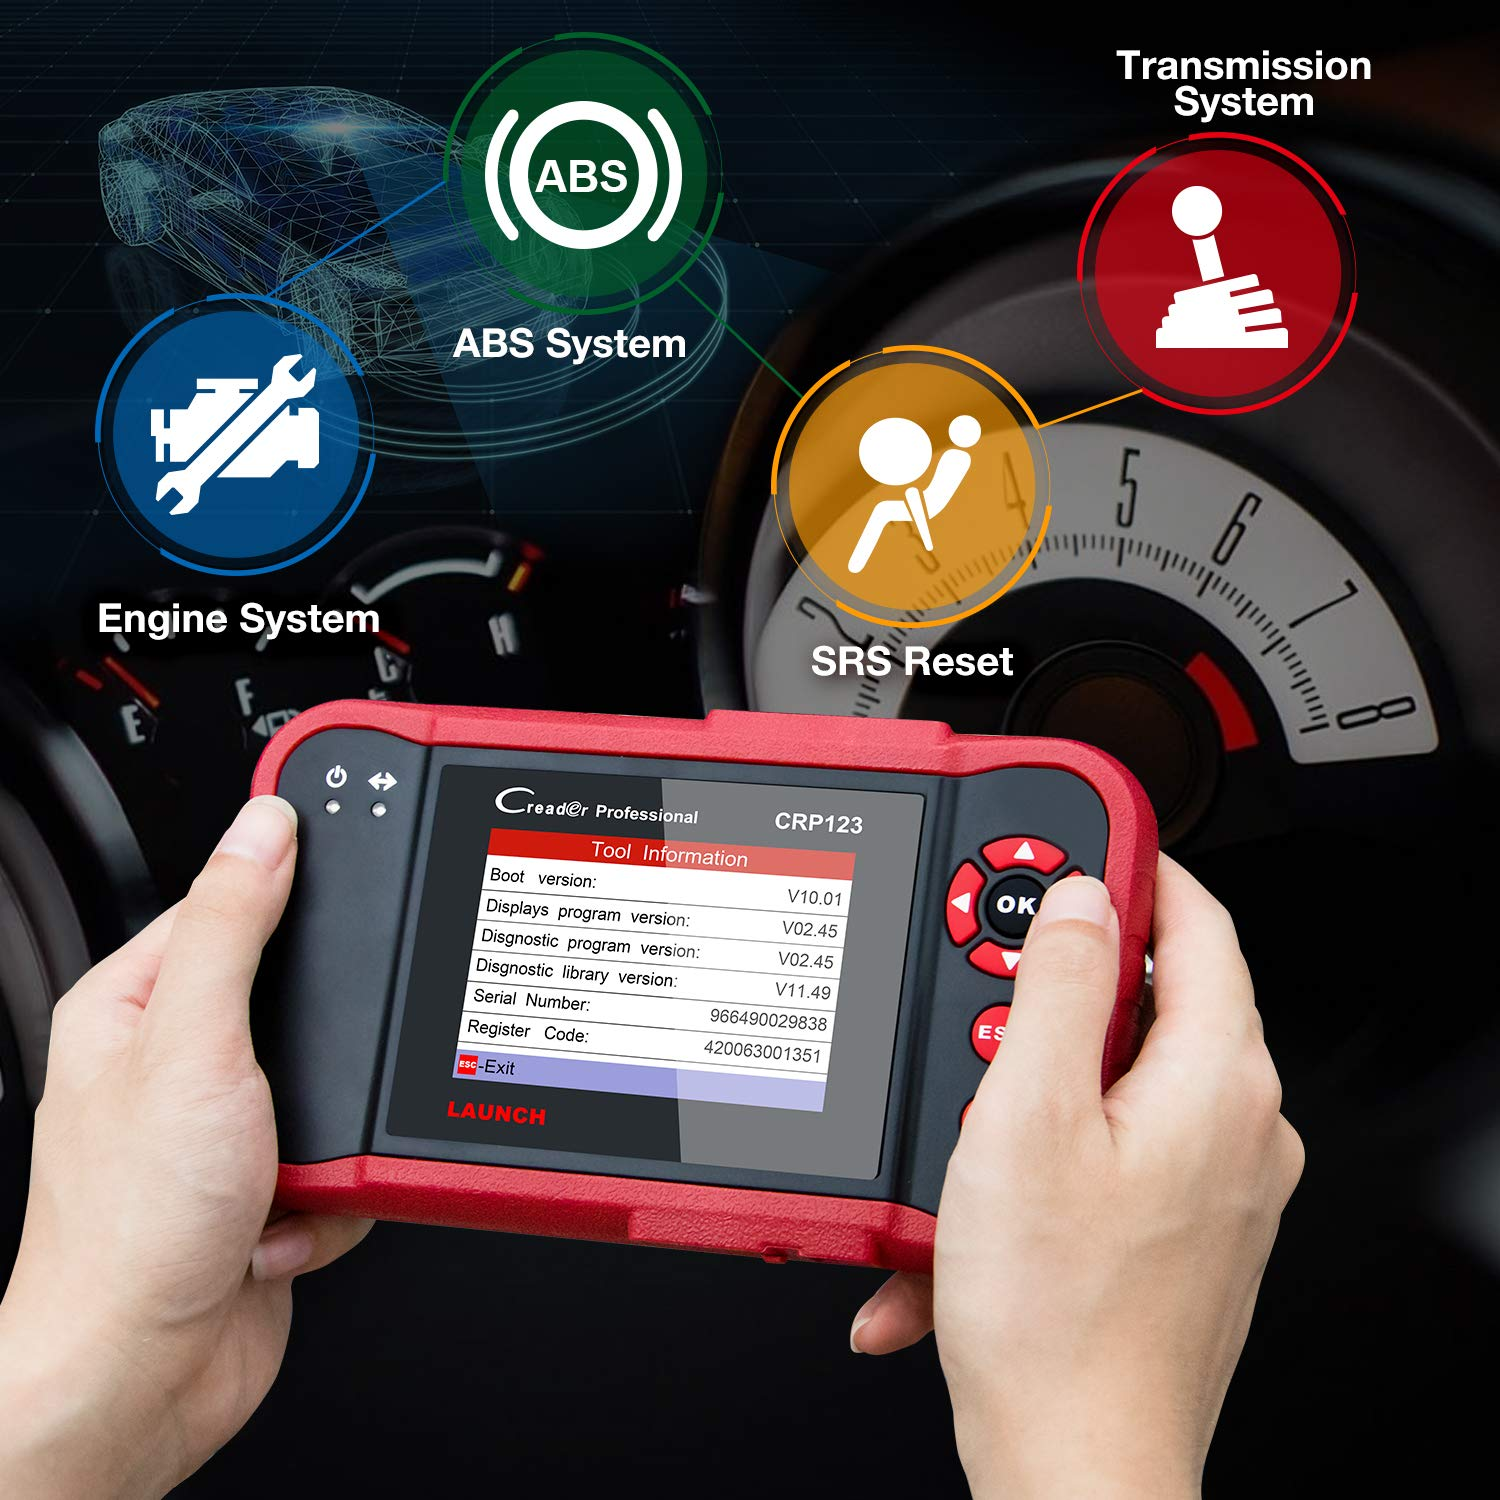 LAUNCH X431 Creader CRP123 Automotive Diagnostic Scan Tool OBD2 Auto Code  Reader Support ENG/TCM/ABS/SRS System Code Reader with EL-50448 TPMS